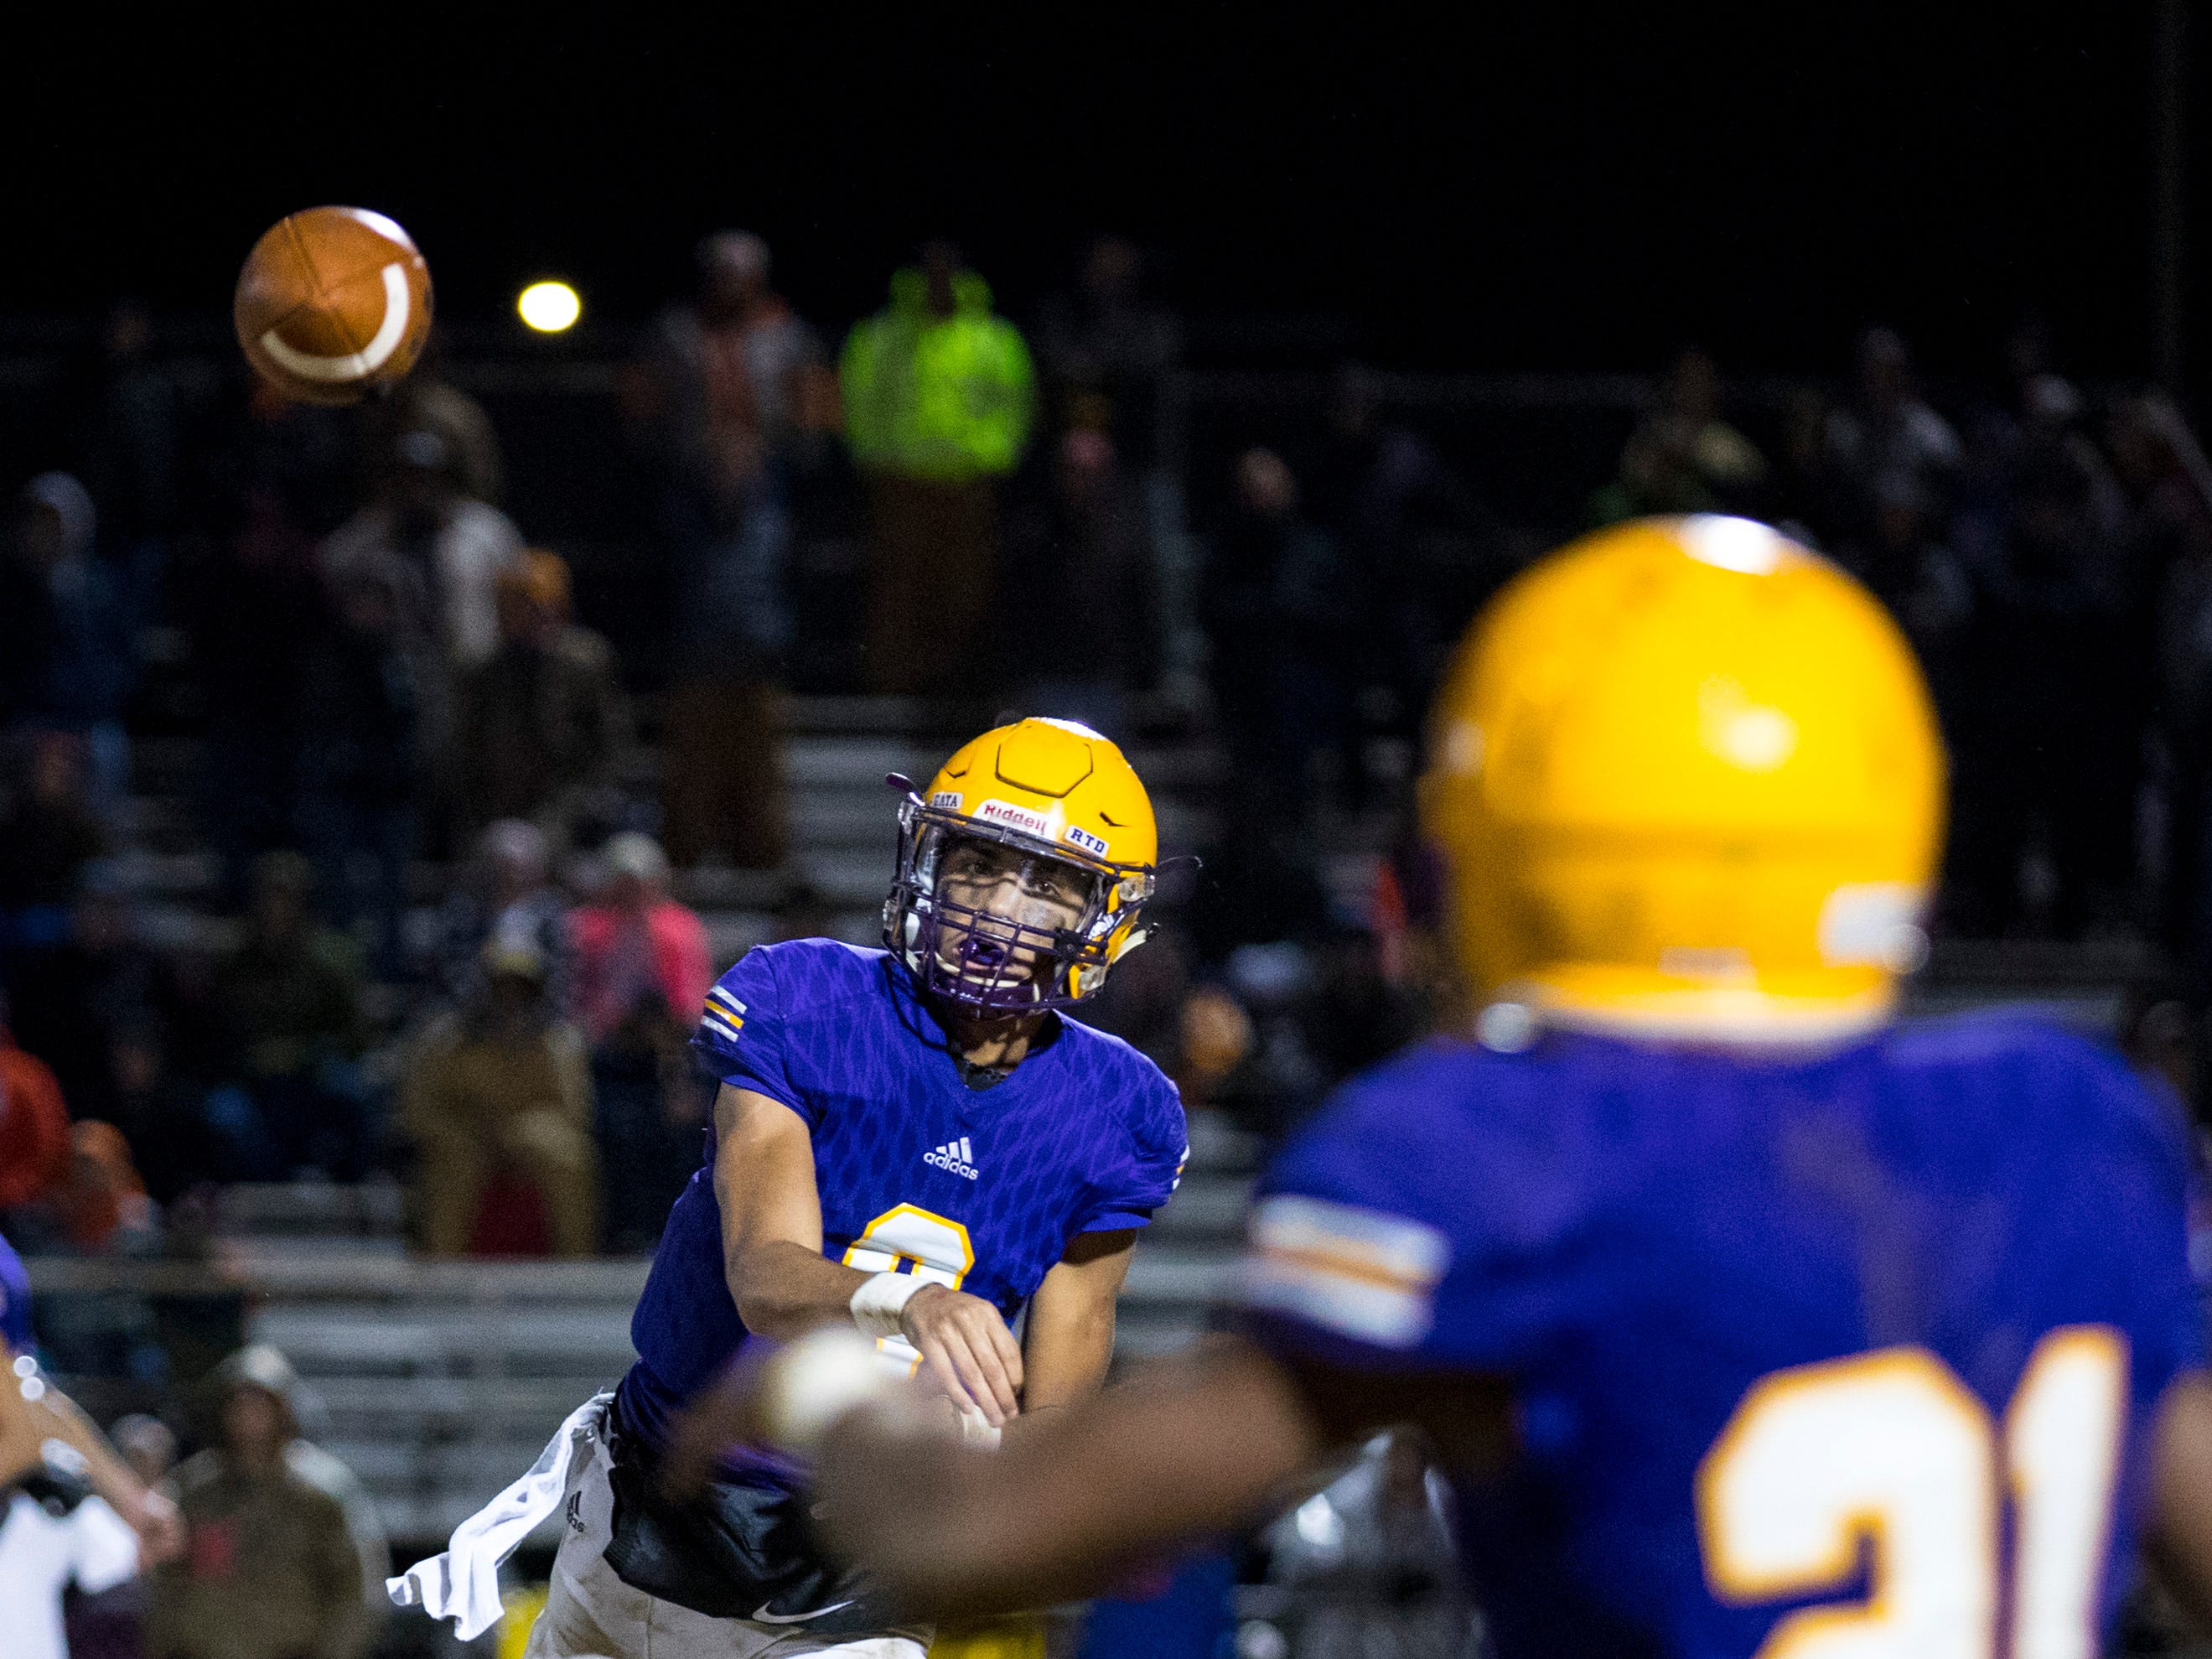 Trousdale County's Keyvont Baines (8) passes to Trousdale County's Dyson Satterfield (21) during Trousdale County's game against Meigs County at Jim Satterfield Stadium in Hartsville on Friday, Nov. 23, 2018.